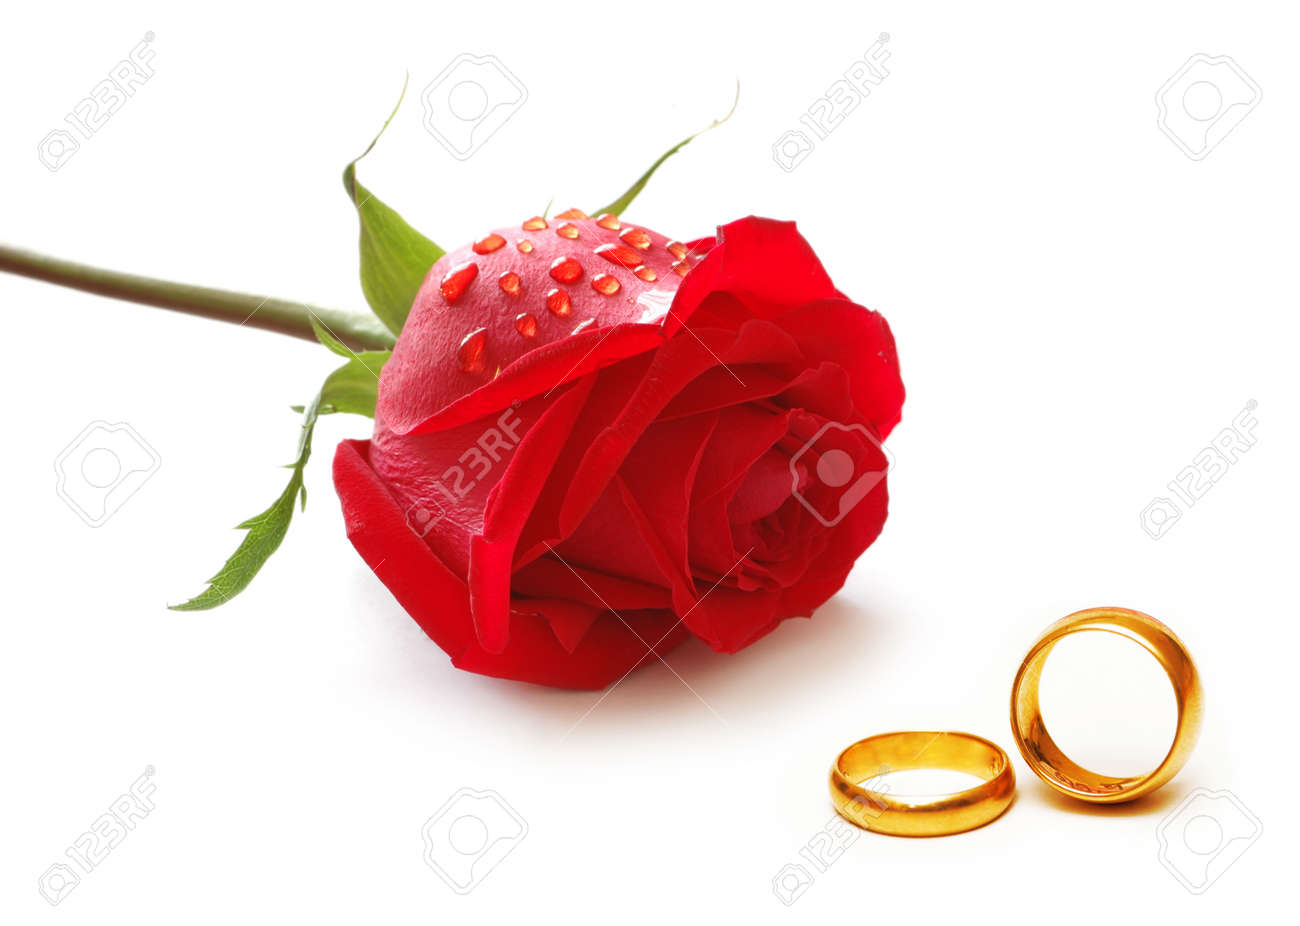 Wedding concept with roses and rings - 10557920